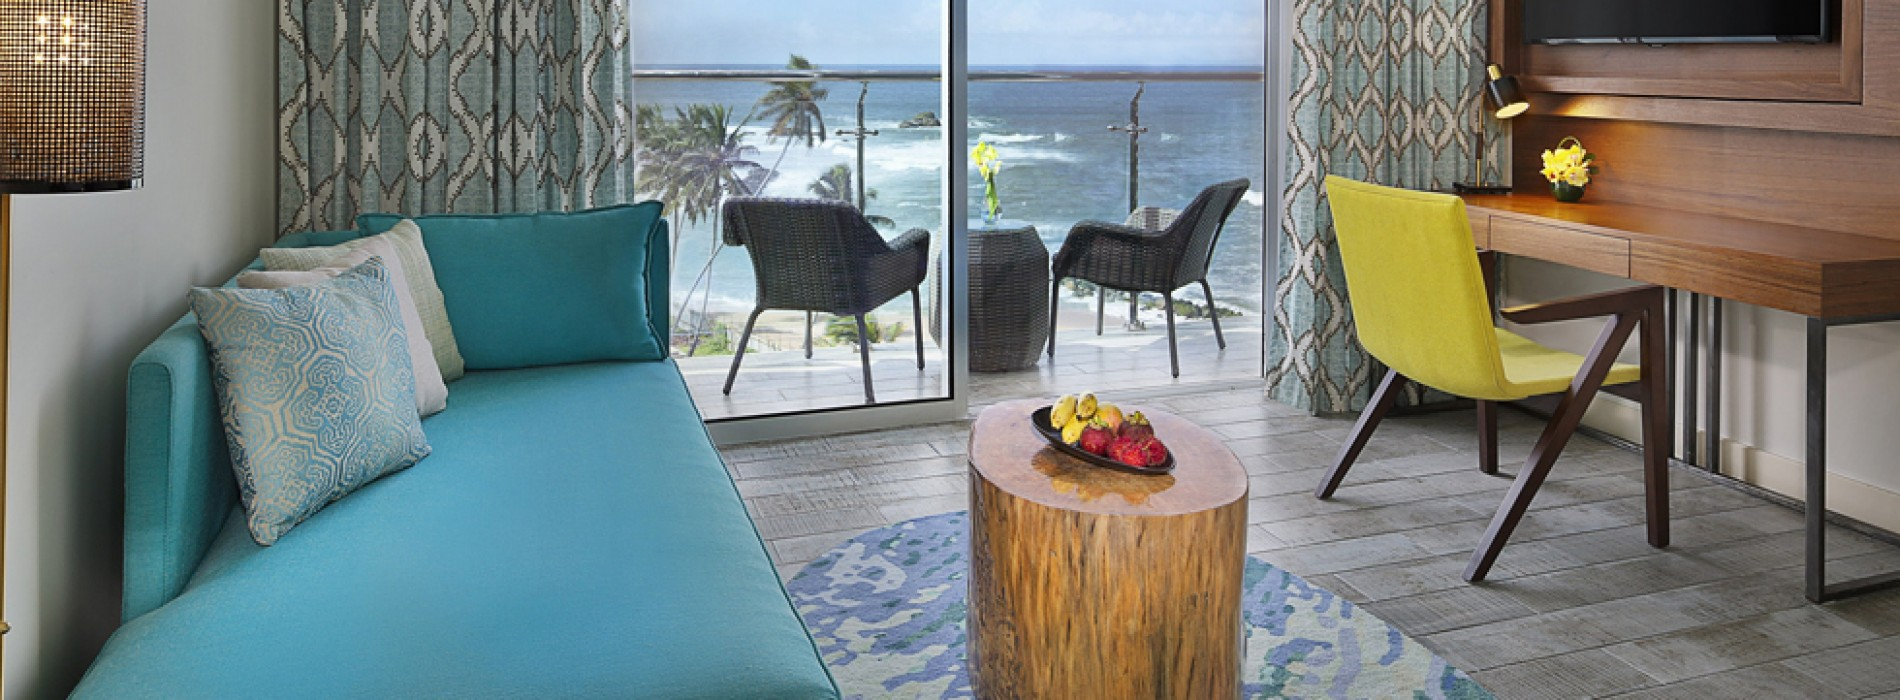 Amari enters Sri Lanka with the opening of a new beachfront resort in Galle